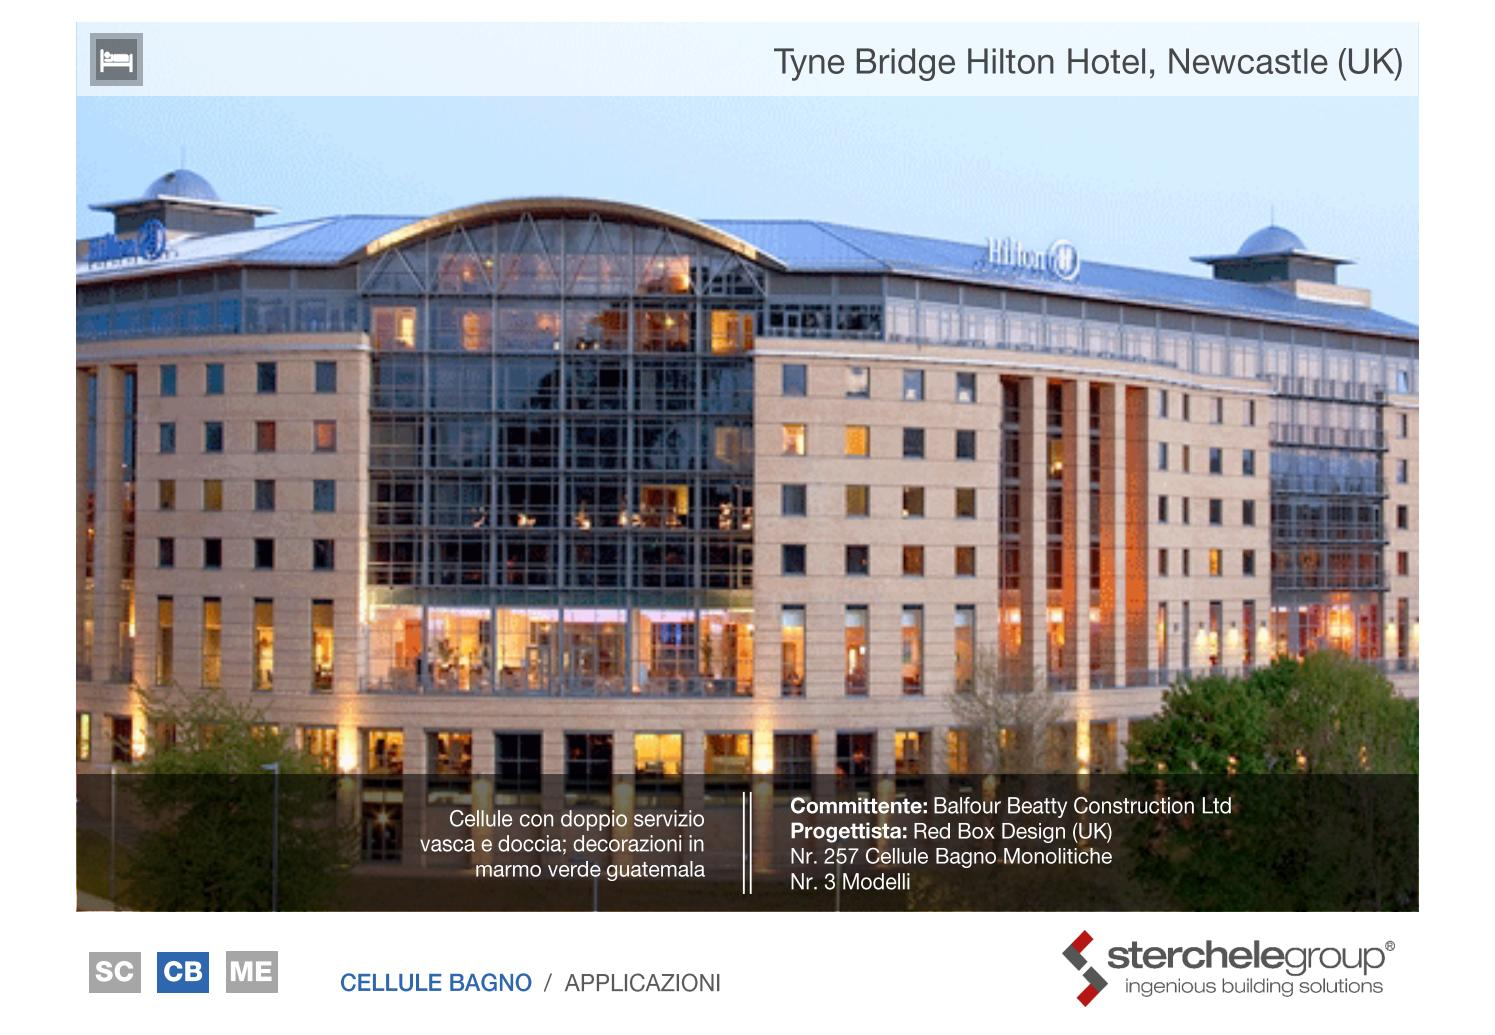 Bagno Design Guatemala Tyne Bridge Hilton Hotel Newcastle Uk By Sterchelegroup Issuu